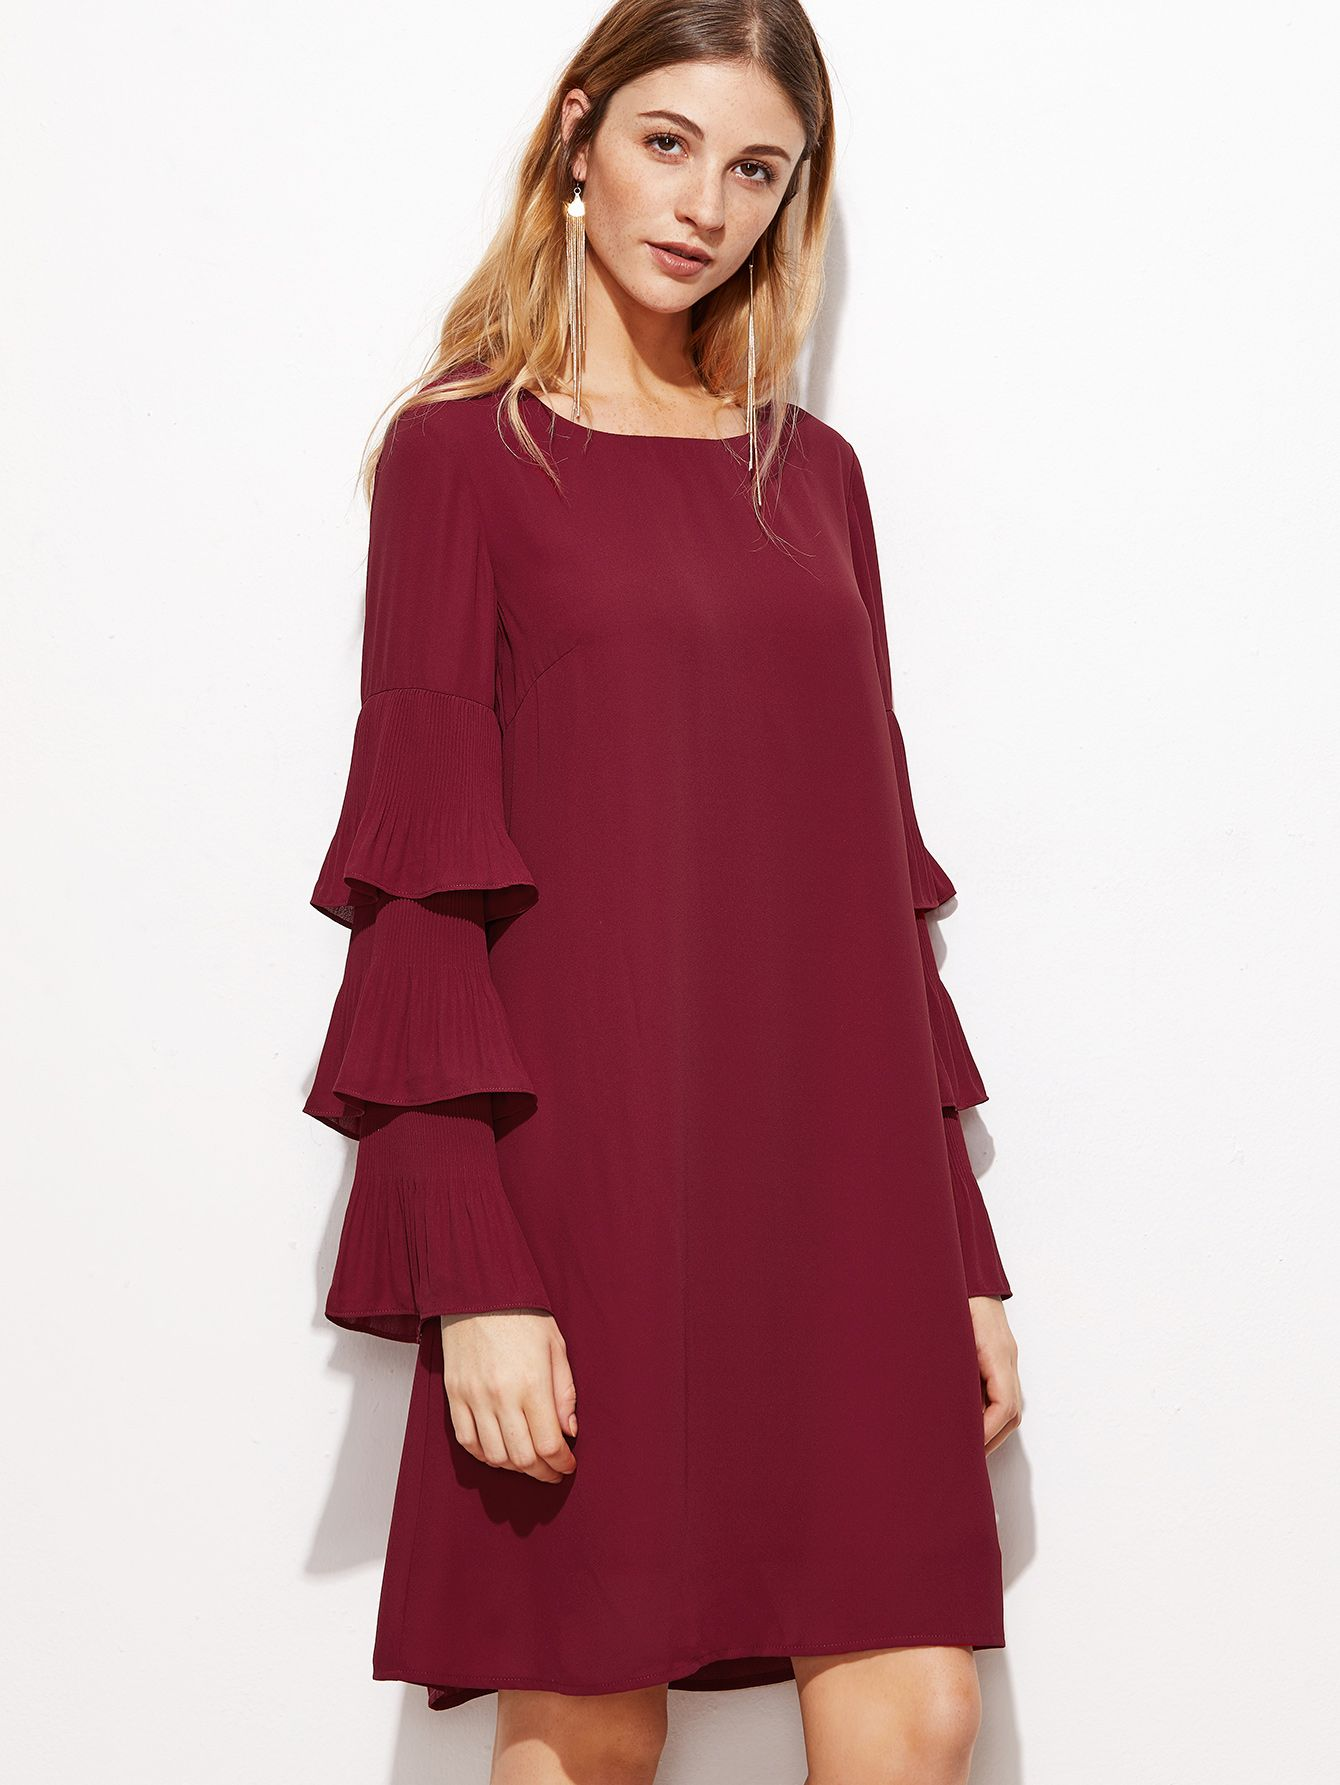 Online shopping for burgundy layered ruffle sleeve tunic dress from